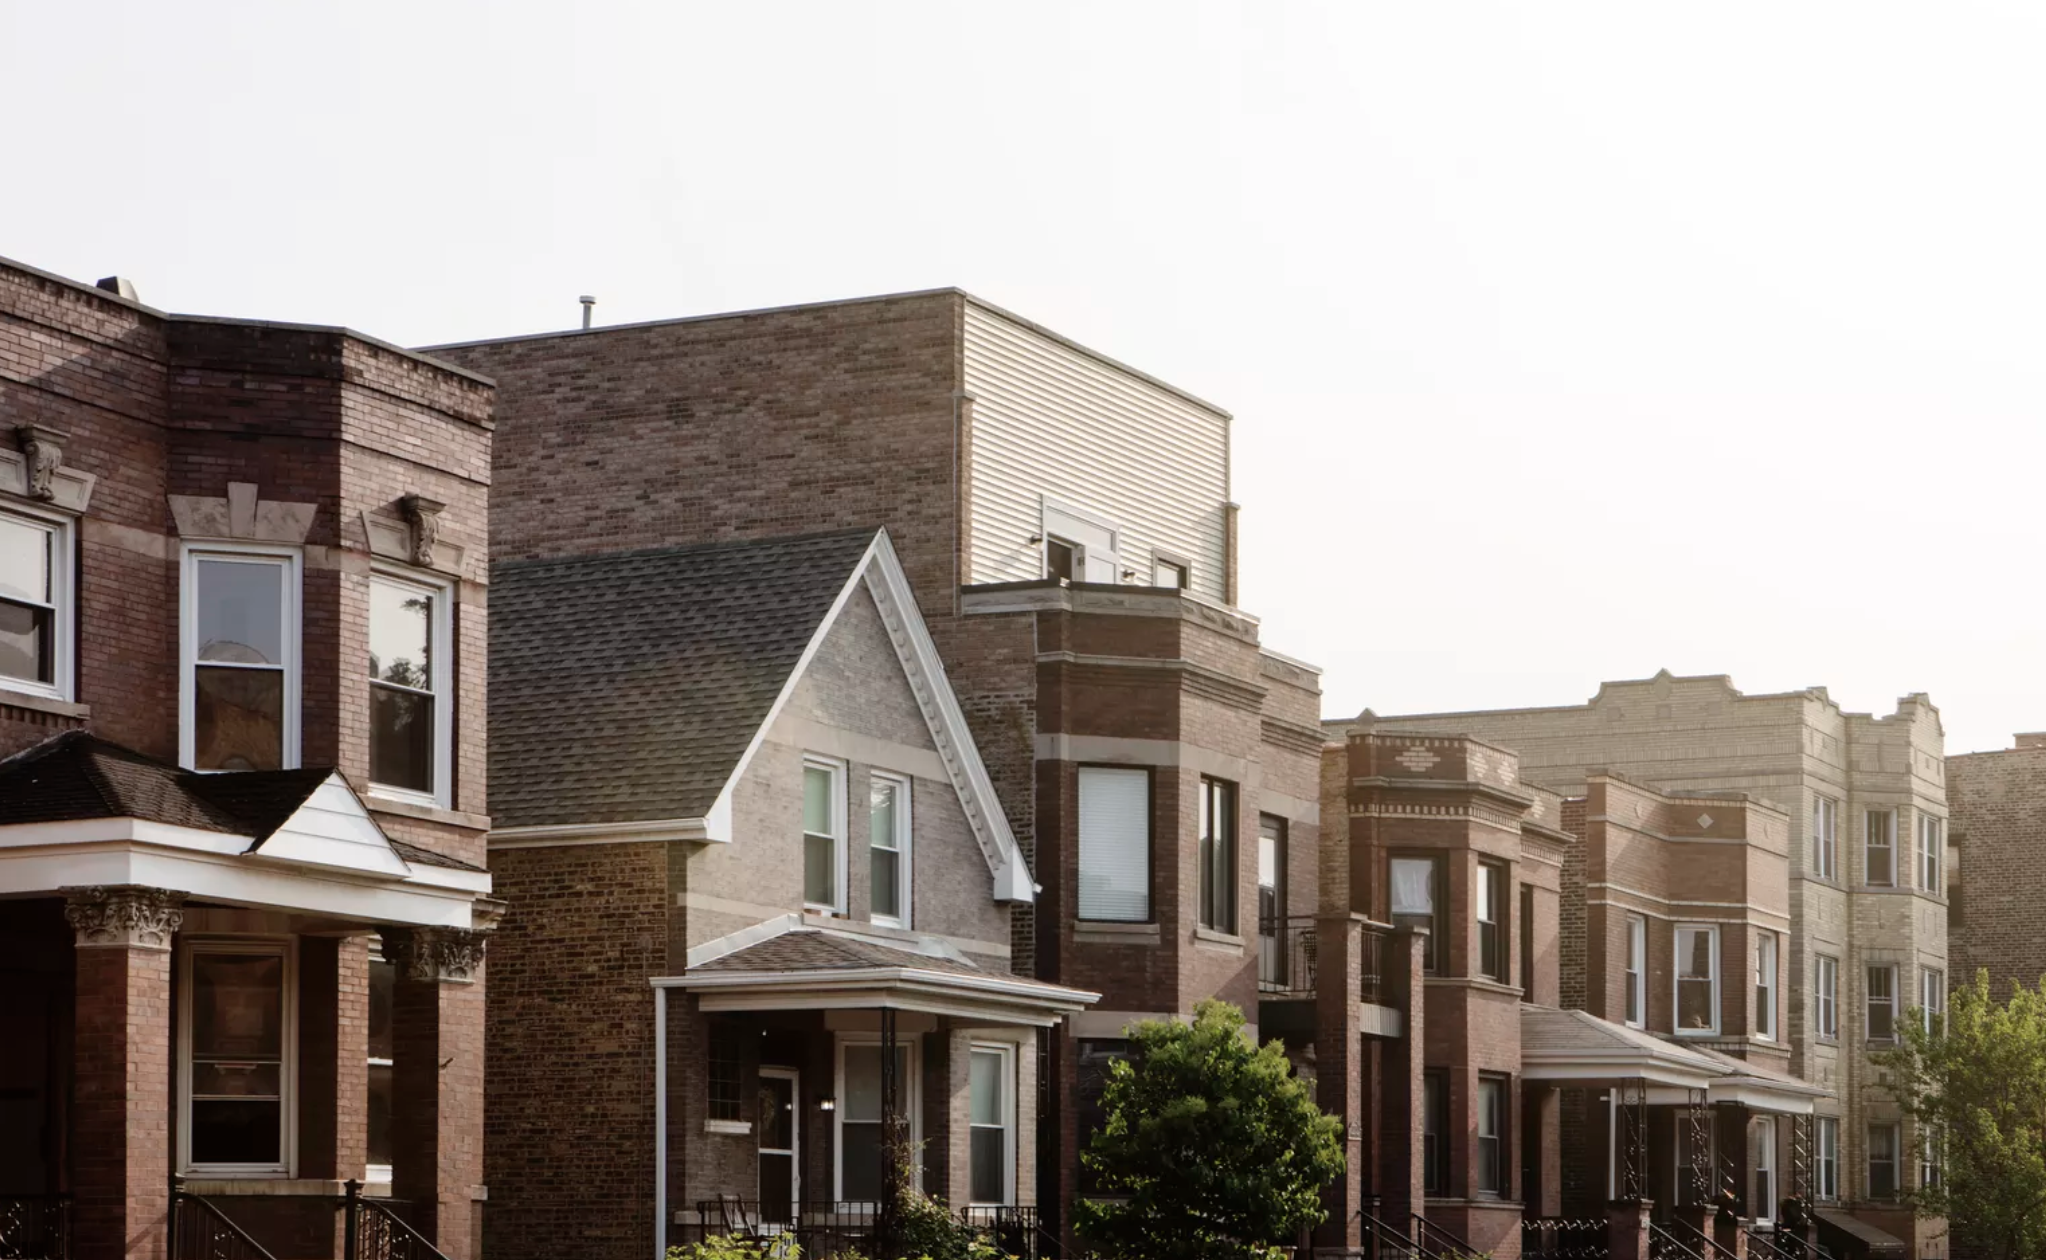 Brick single-family homes and multi-flat residential buildings on a tree-lined street in Chicago.